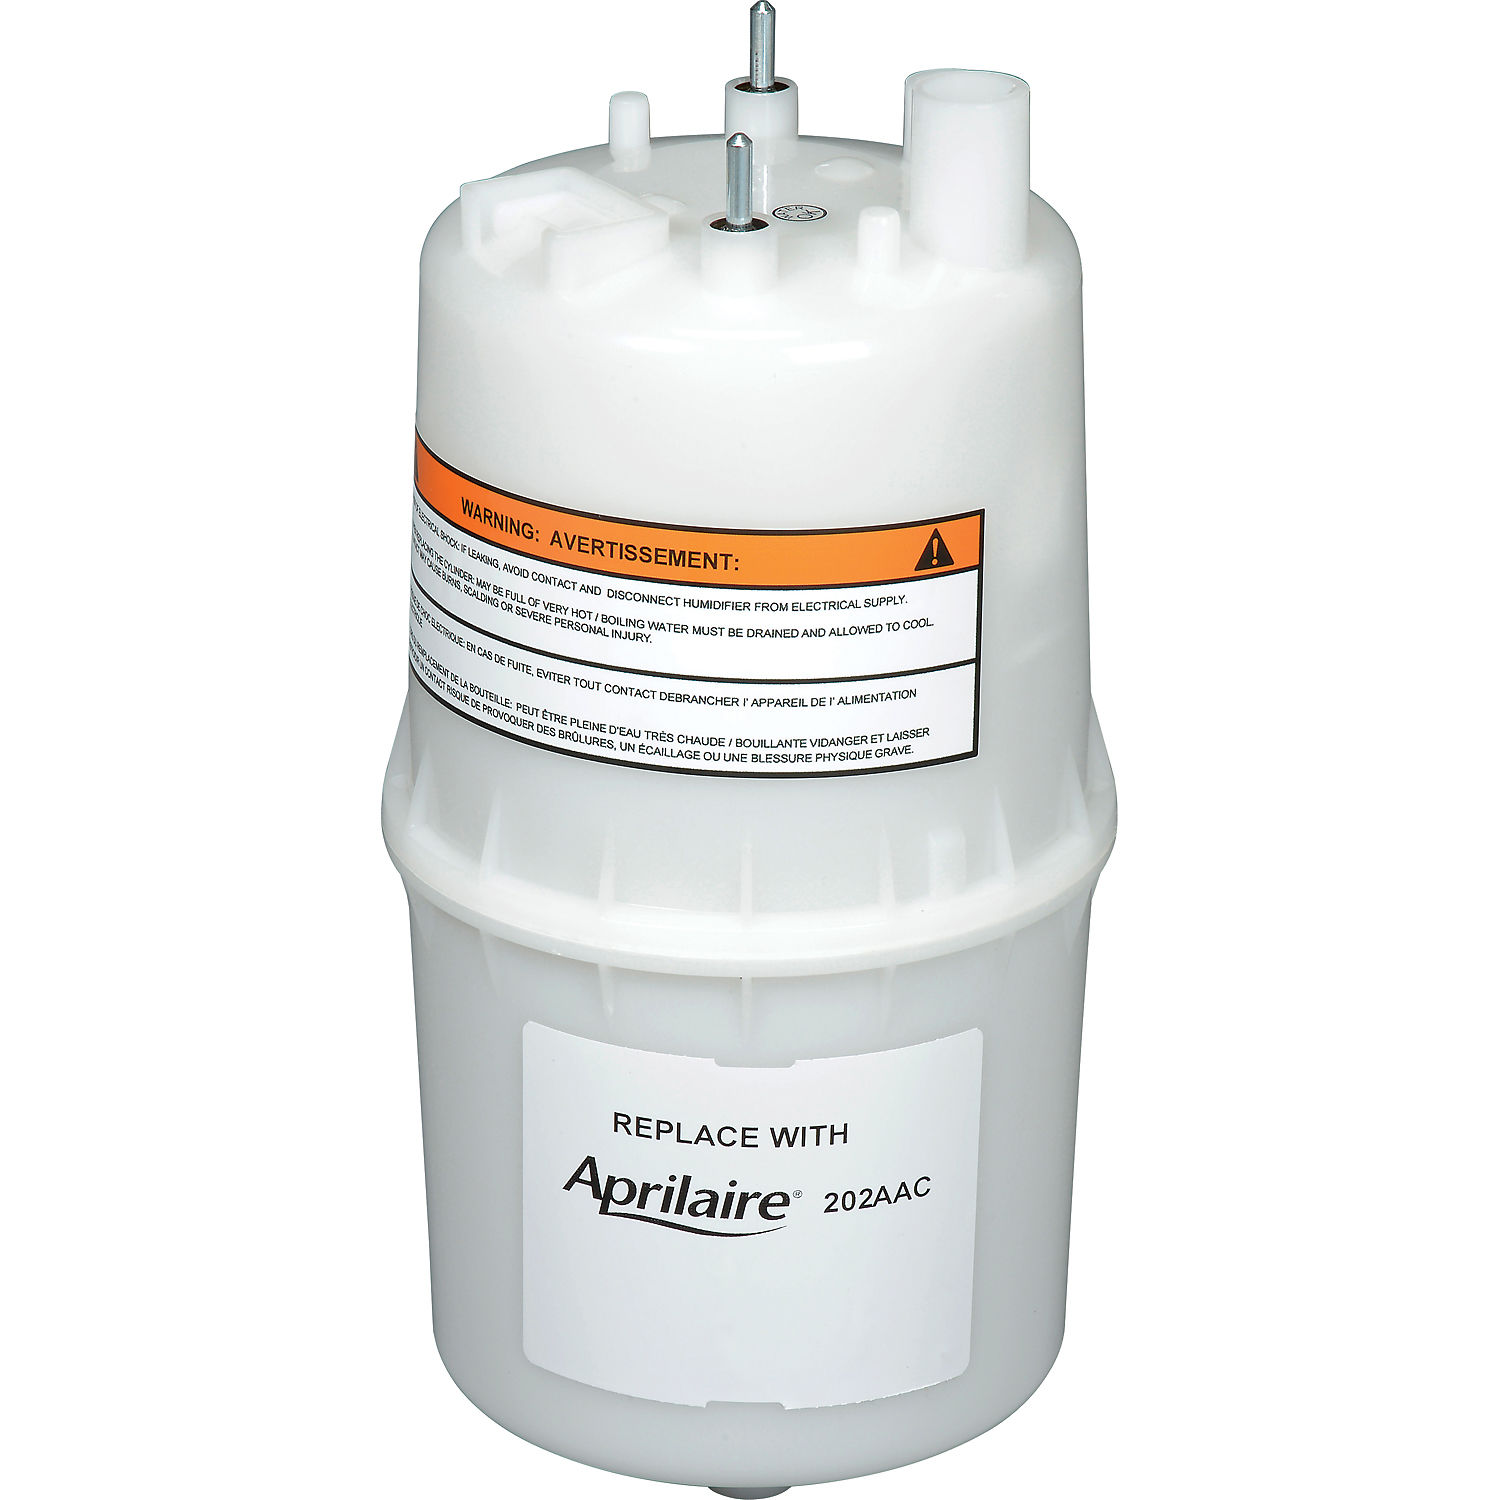 Aprilaire Replacement Steam Cylinder 202AAC, For Honeywell & Nortec Humidifiers - Pkg Qty 6